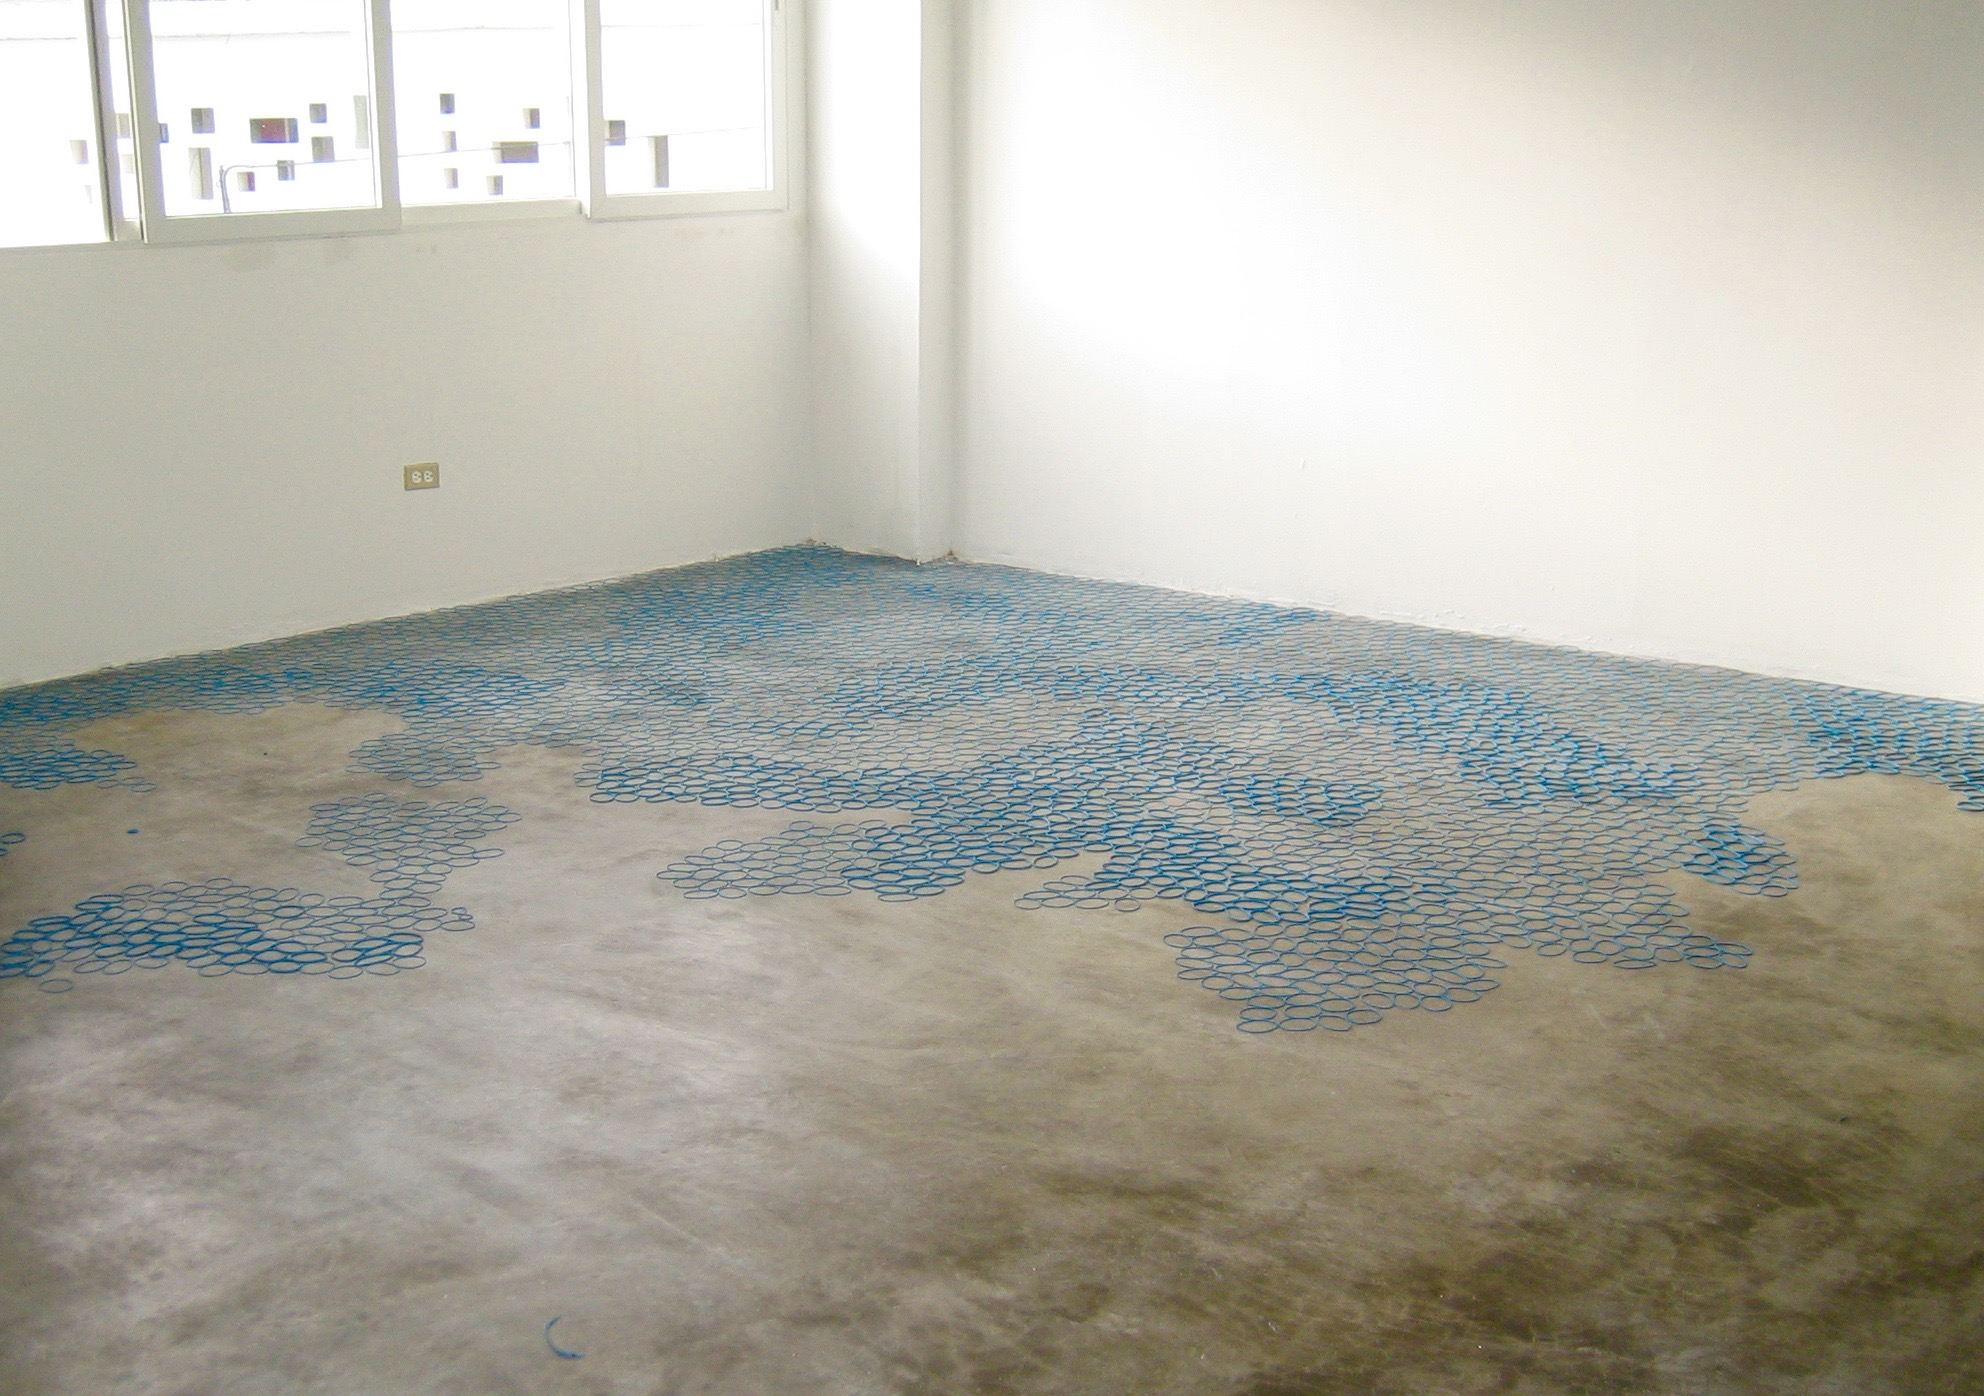 untitled site specific floor installation (3) (detail) latex dimensions variable 2009